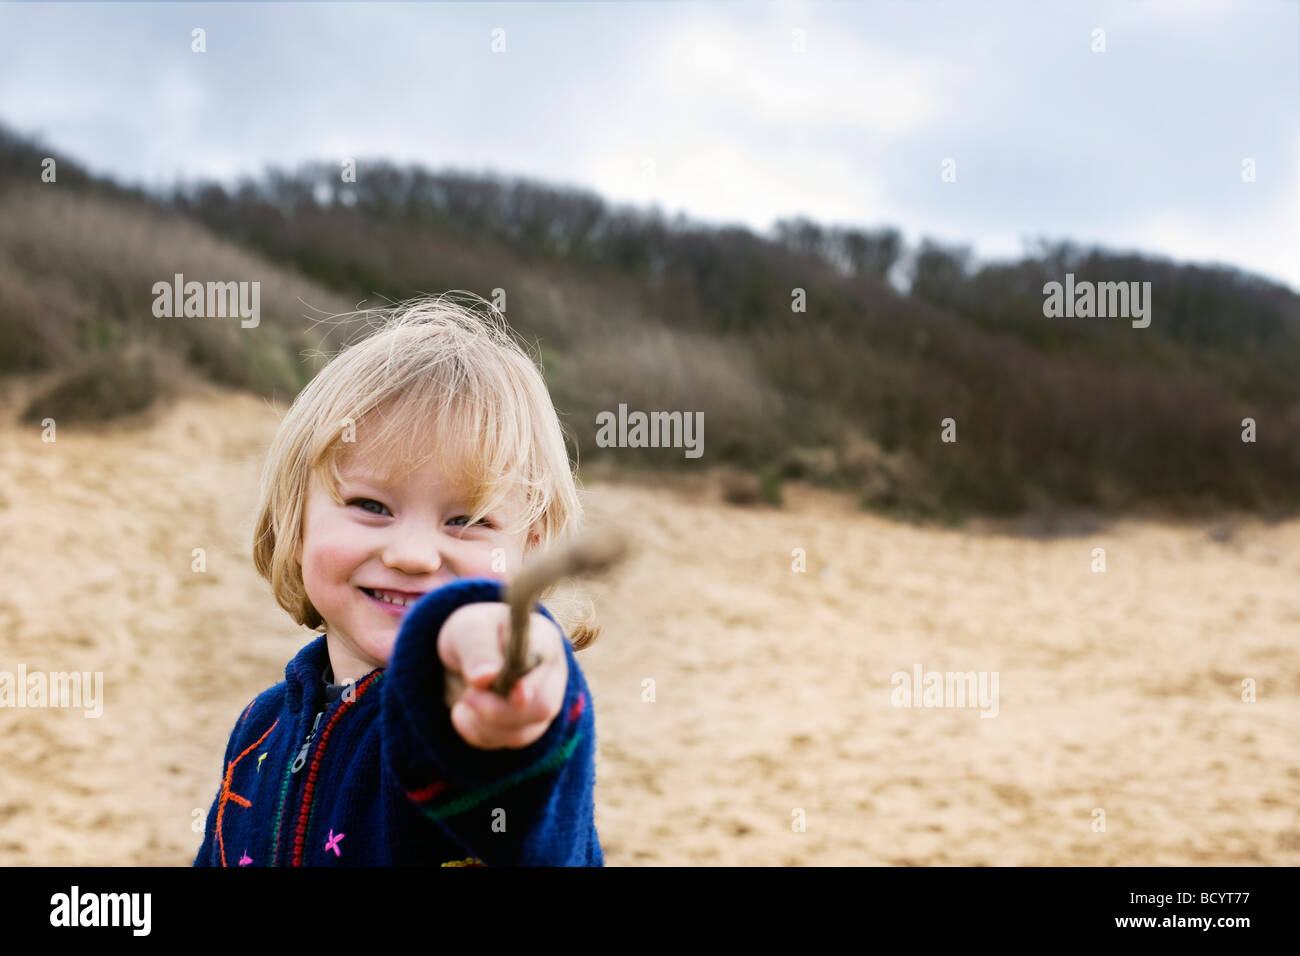 boy on beach pointing with stick - Stock Image